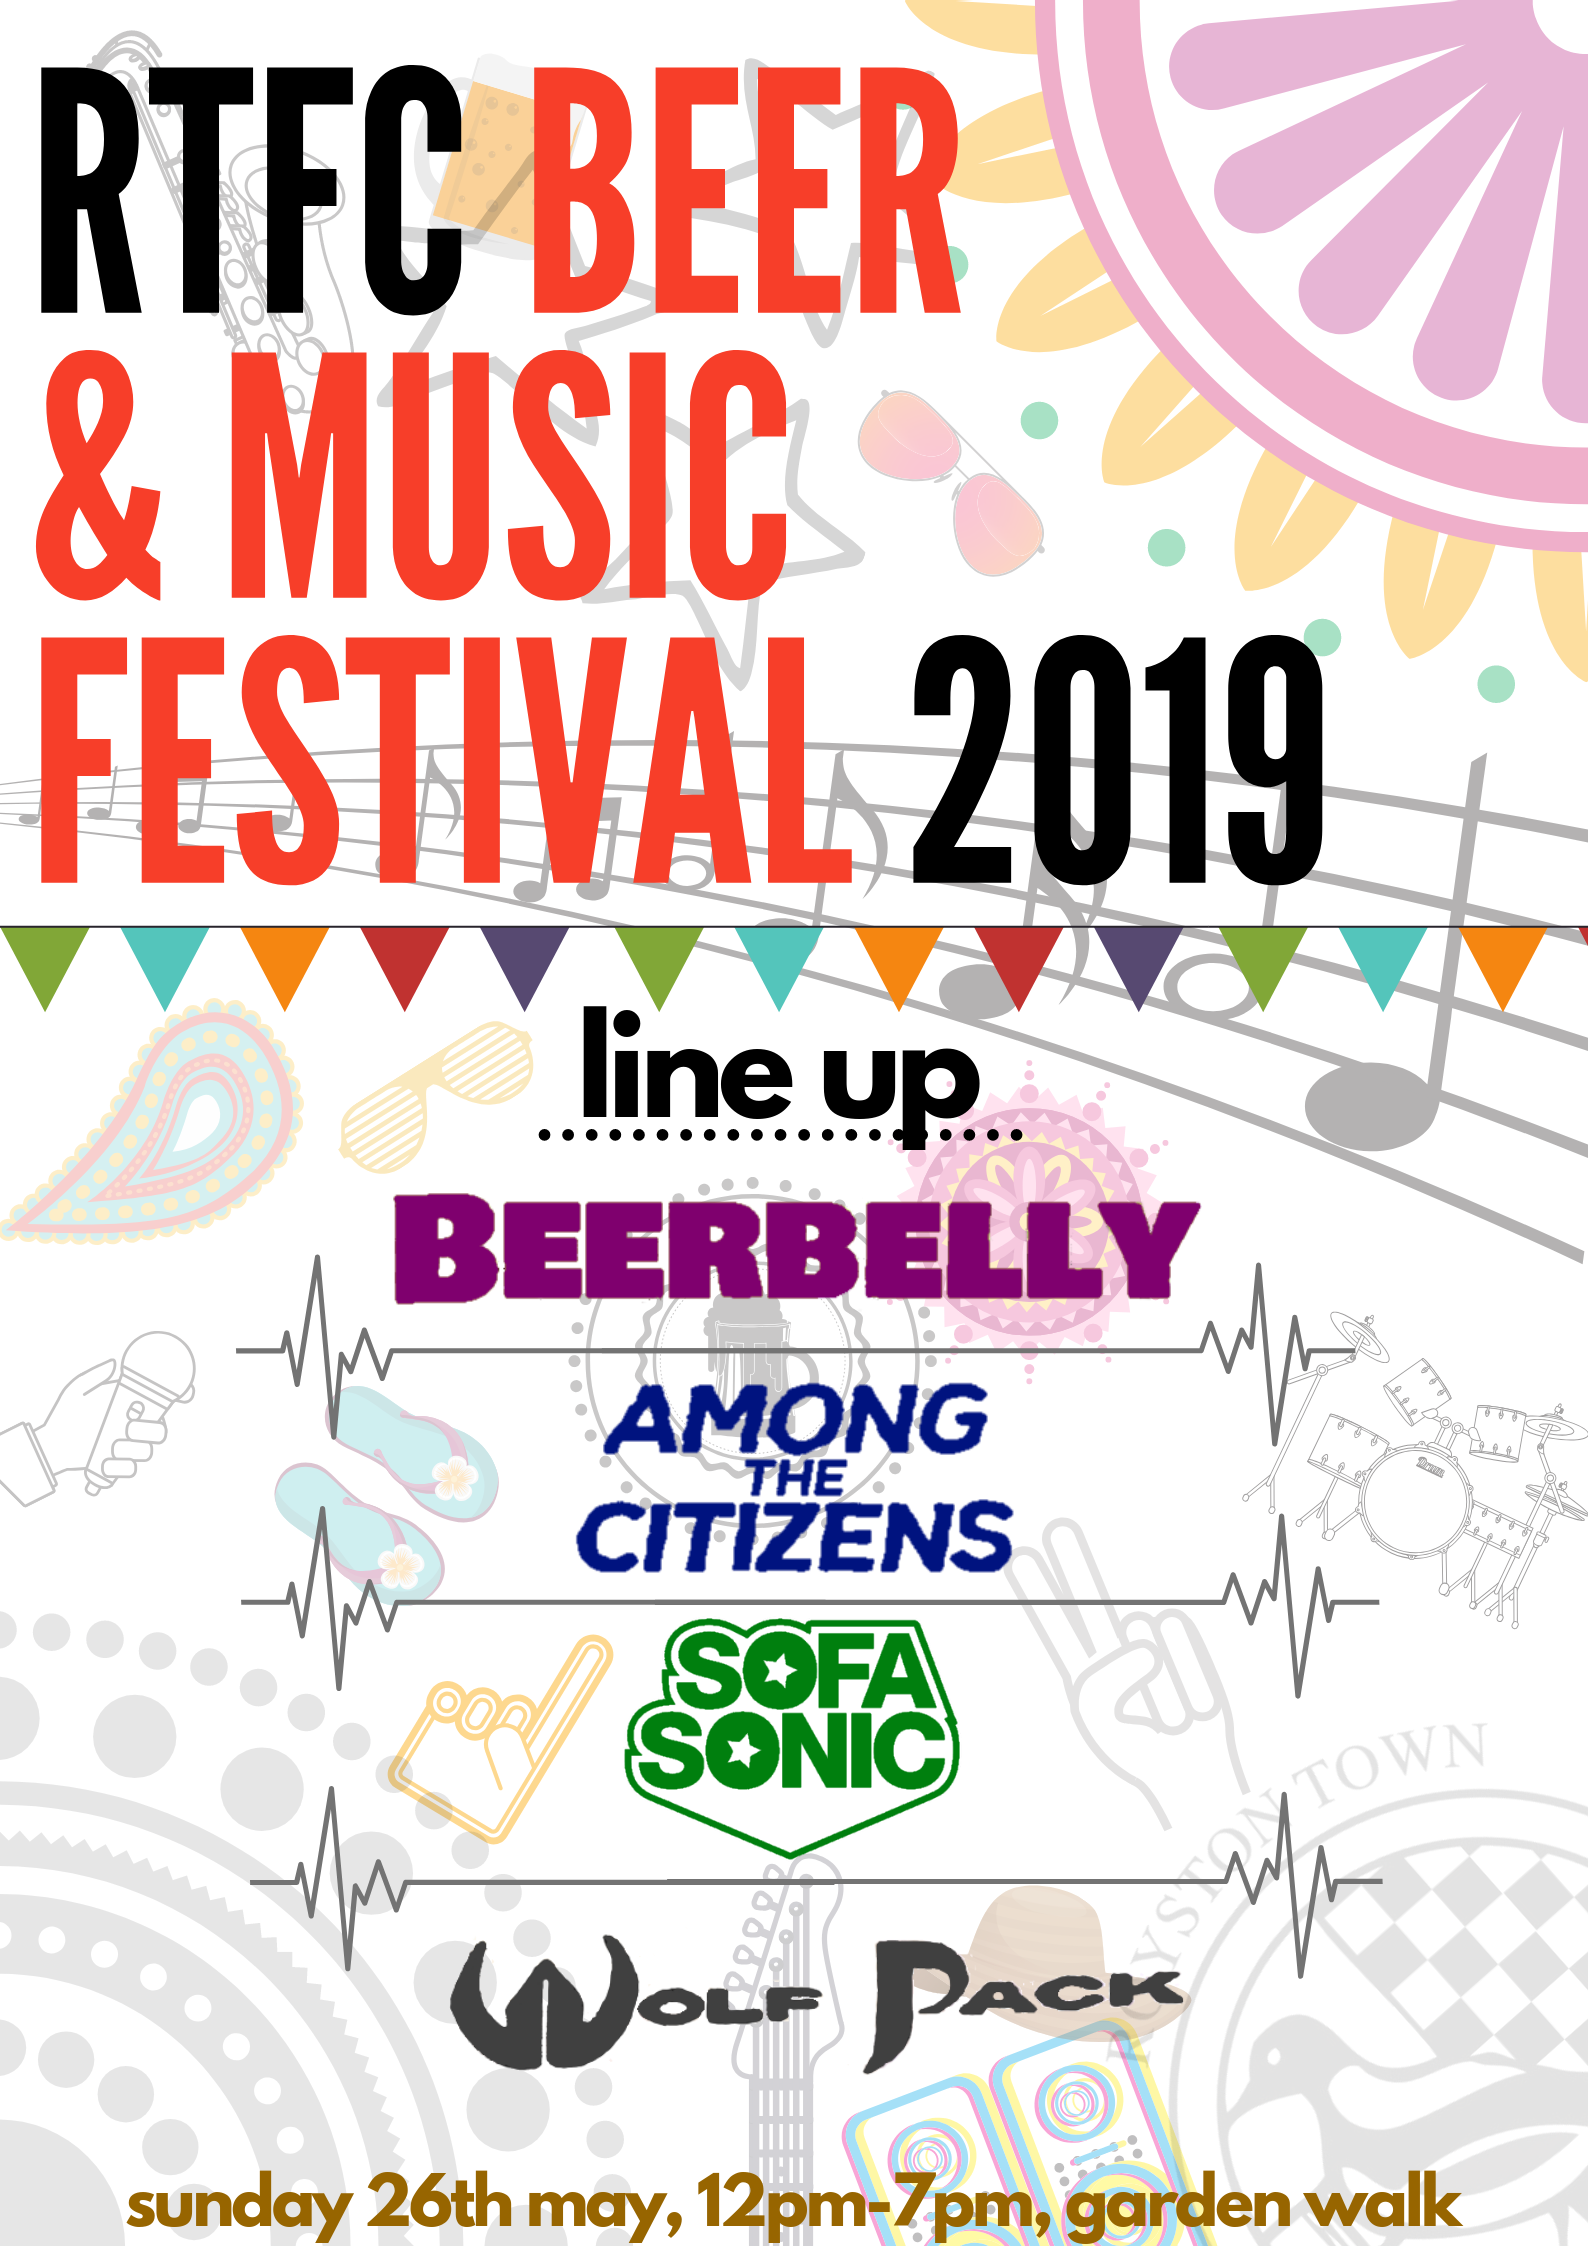 Beer and Music Festival line up